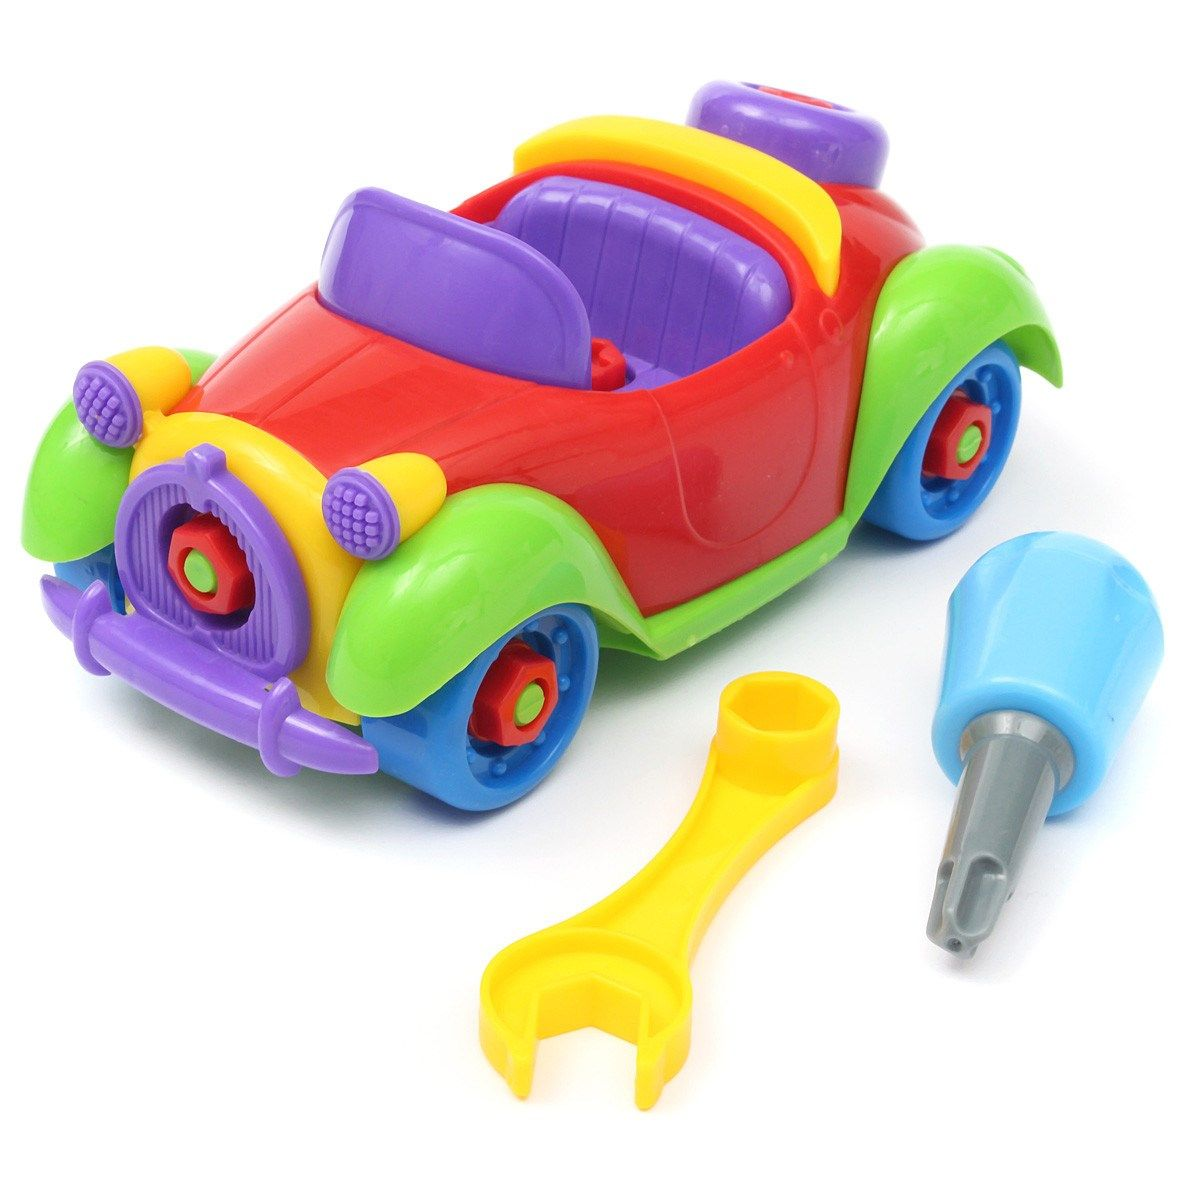 Educational car toys   Hot Sale Christmas Gift Kids Baby Boys Girls Disassembly